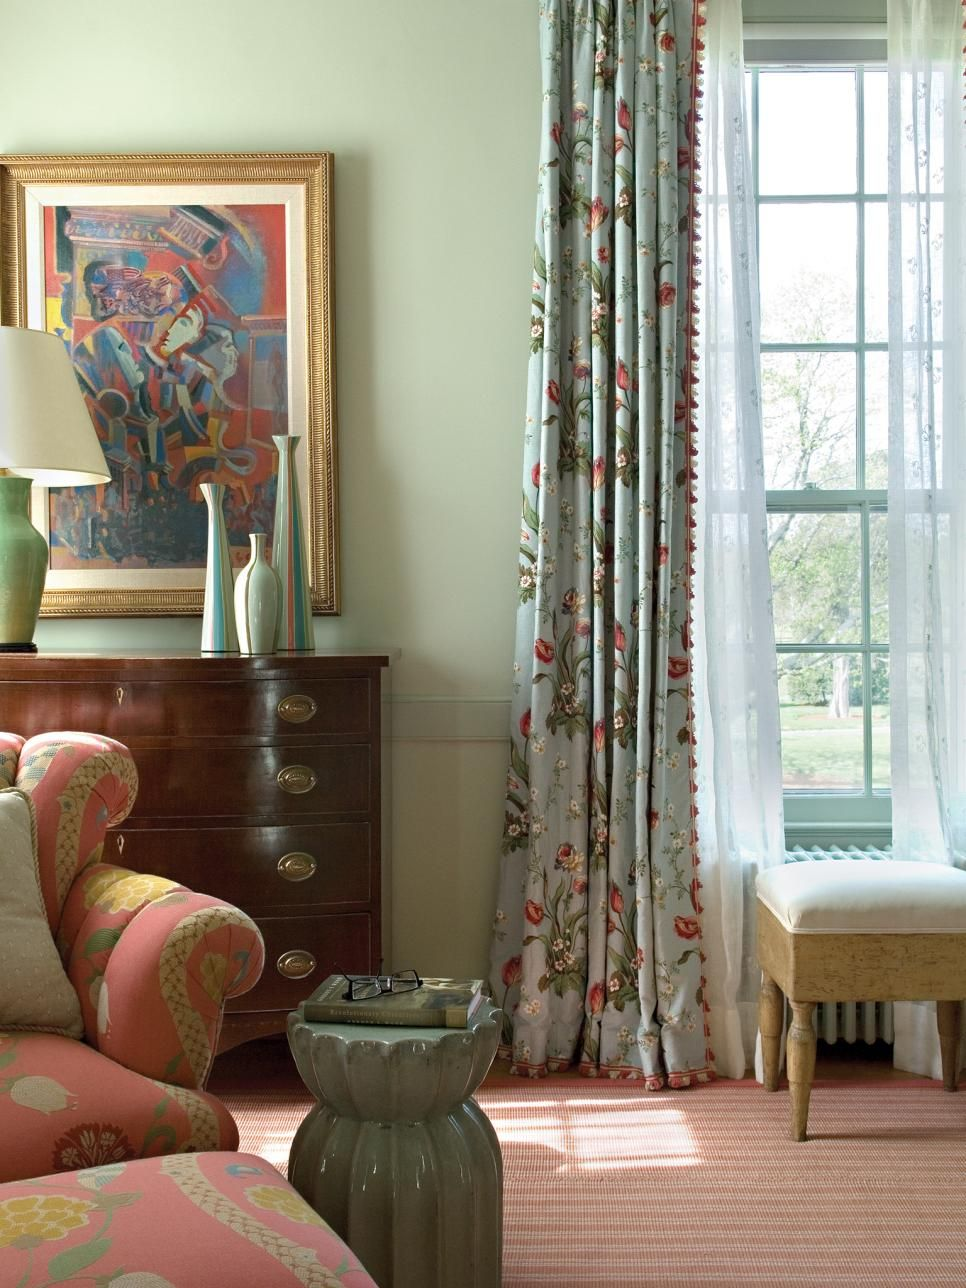 Blue and green floral curtains - Blue Floral Curtains With A Red And Green Floral Design Complement The Upholstered Armchair And Ottoman